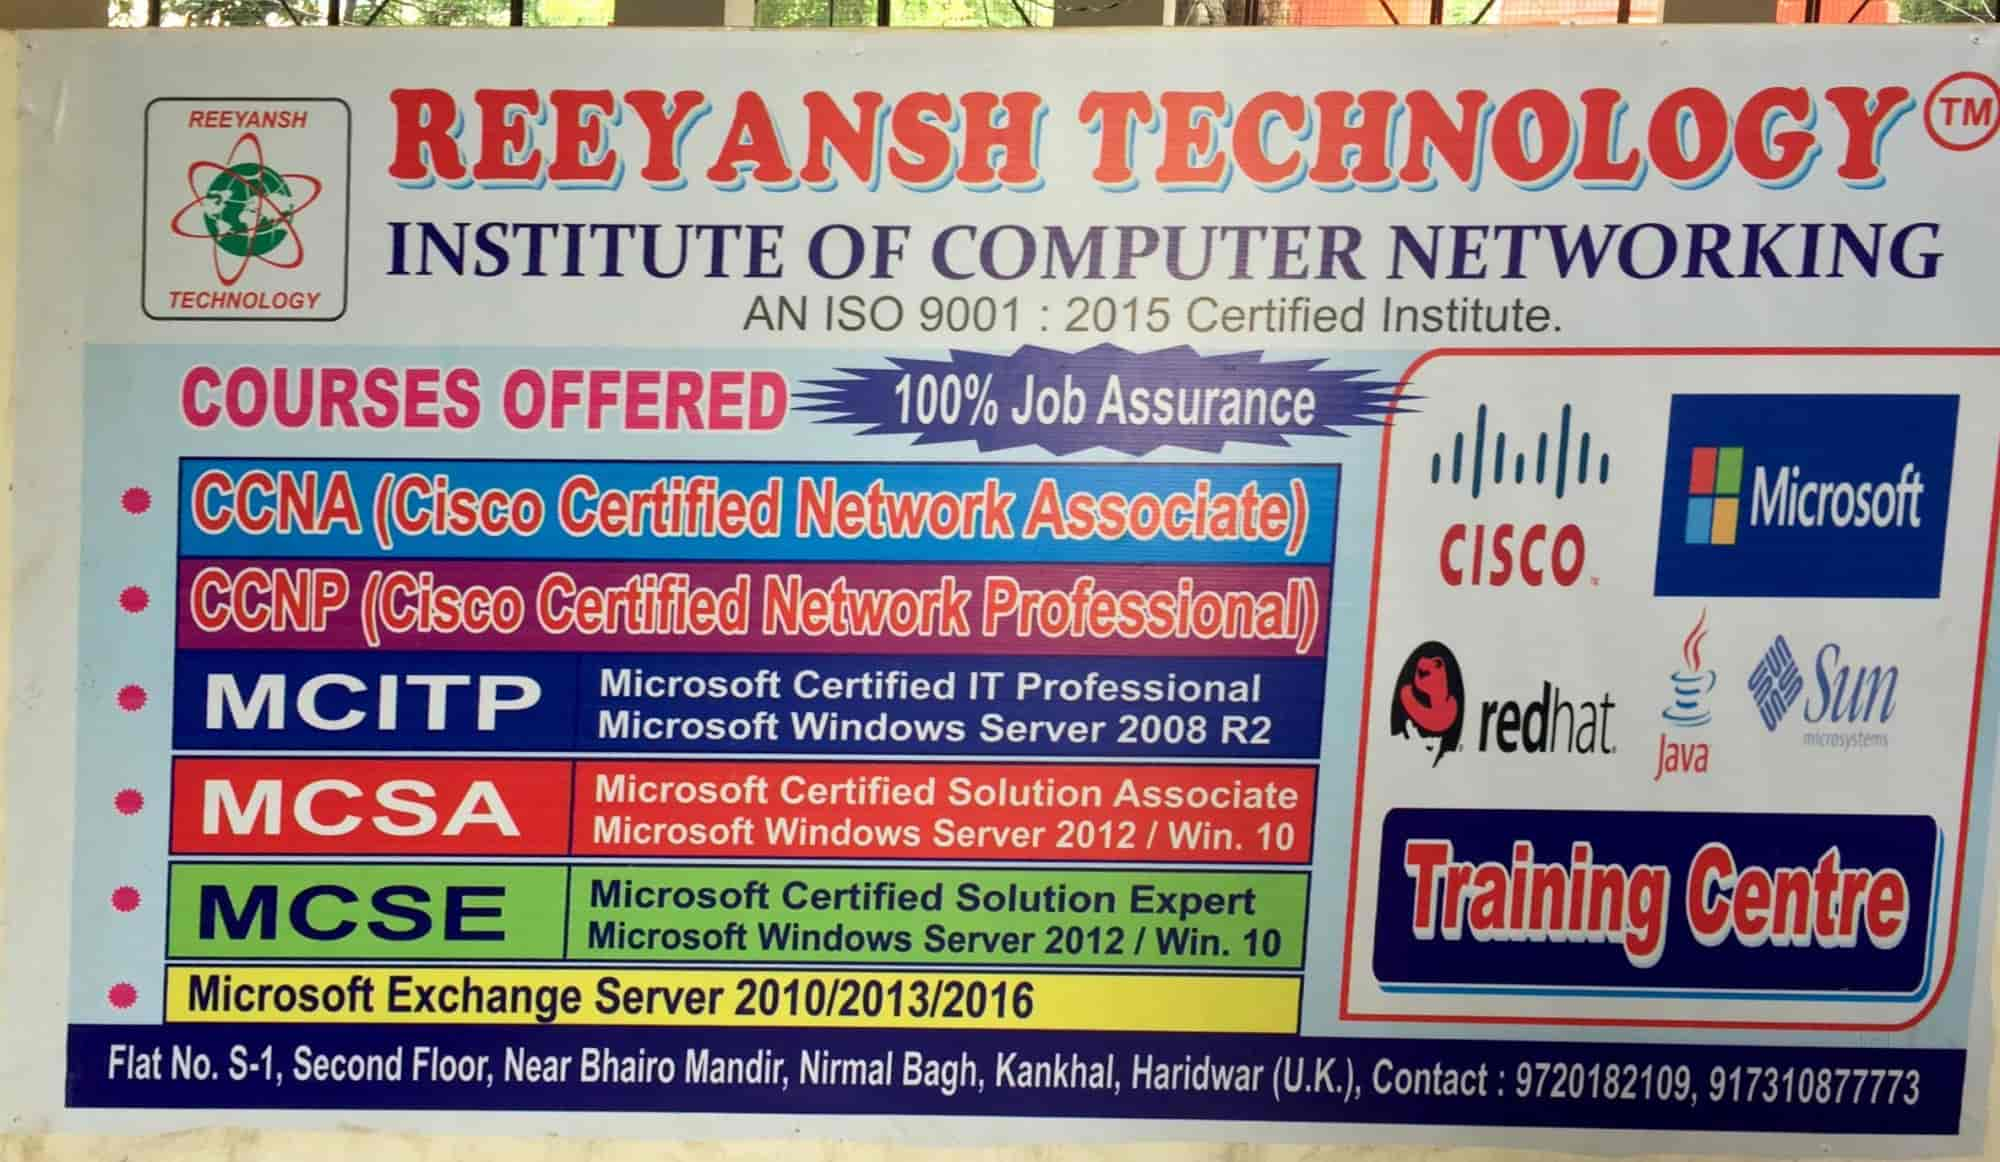 Reeyansh technology institute of computer networking closed down reeyansh technology institute of computer networking closed down photos kankhal 1betcityfo Images